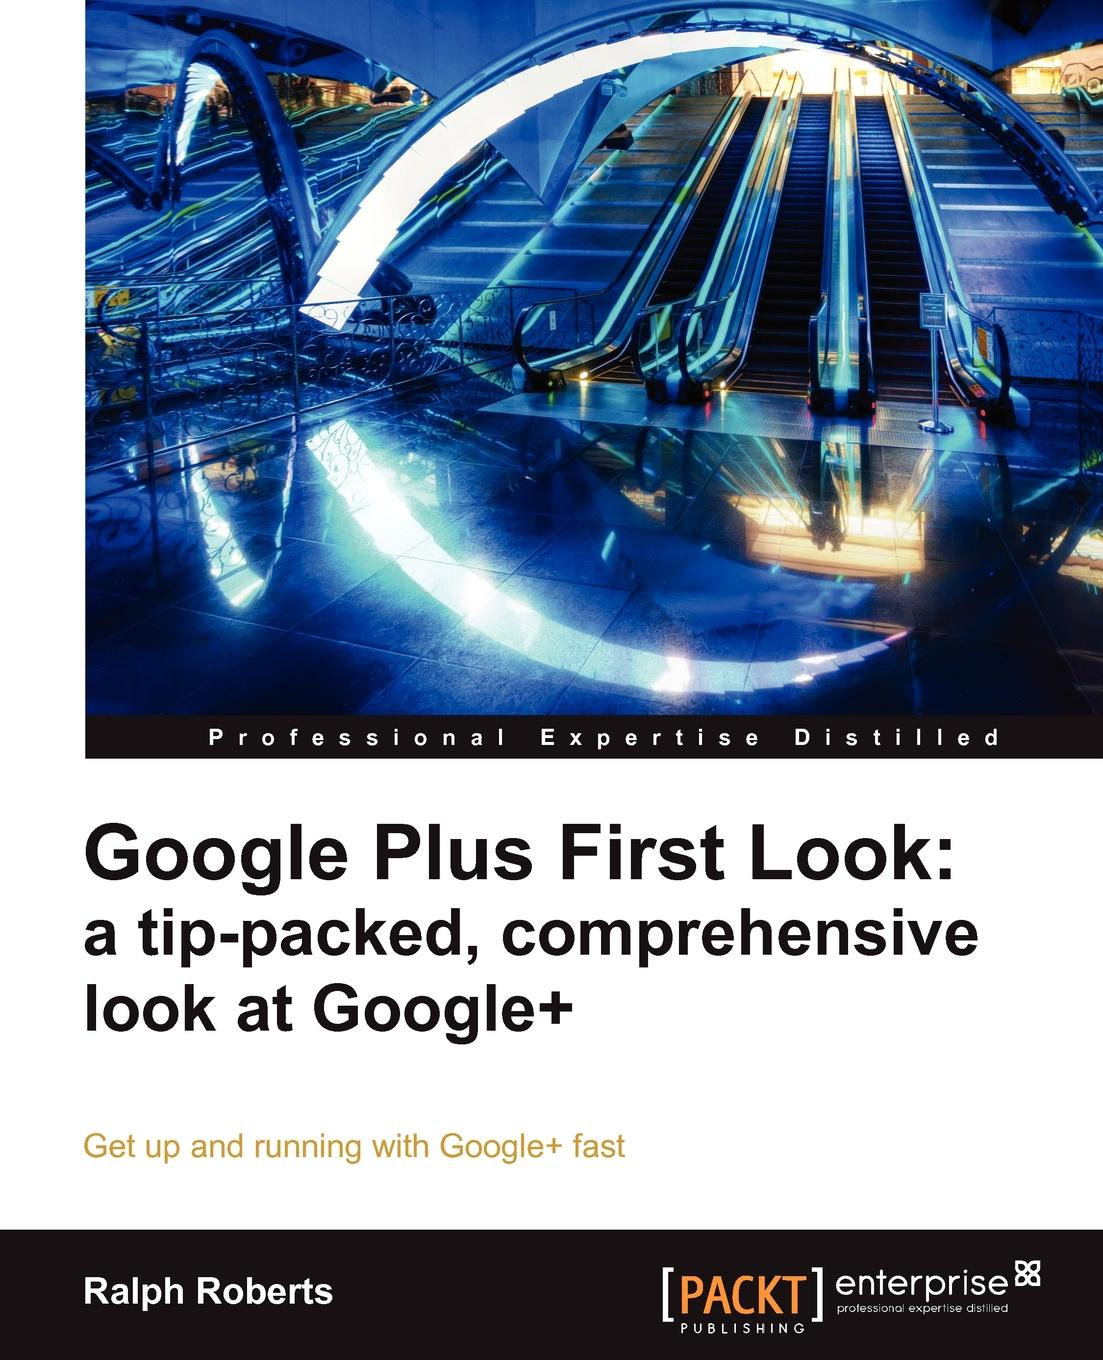 Ralph Roberts Google Plus First Look. A Tip-Packed, Comprehensive Look at Google+